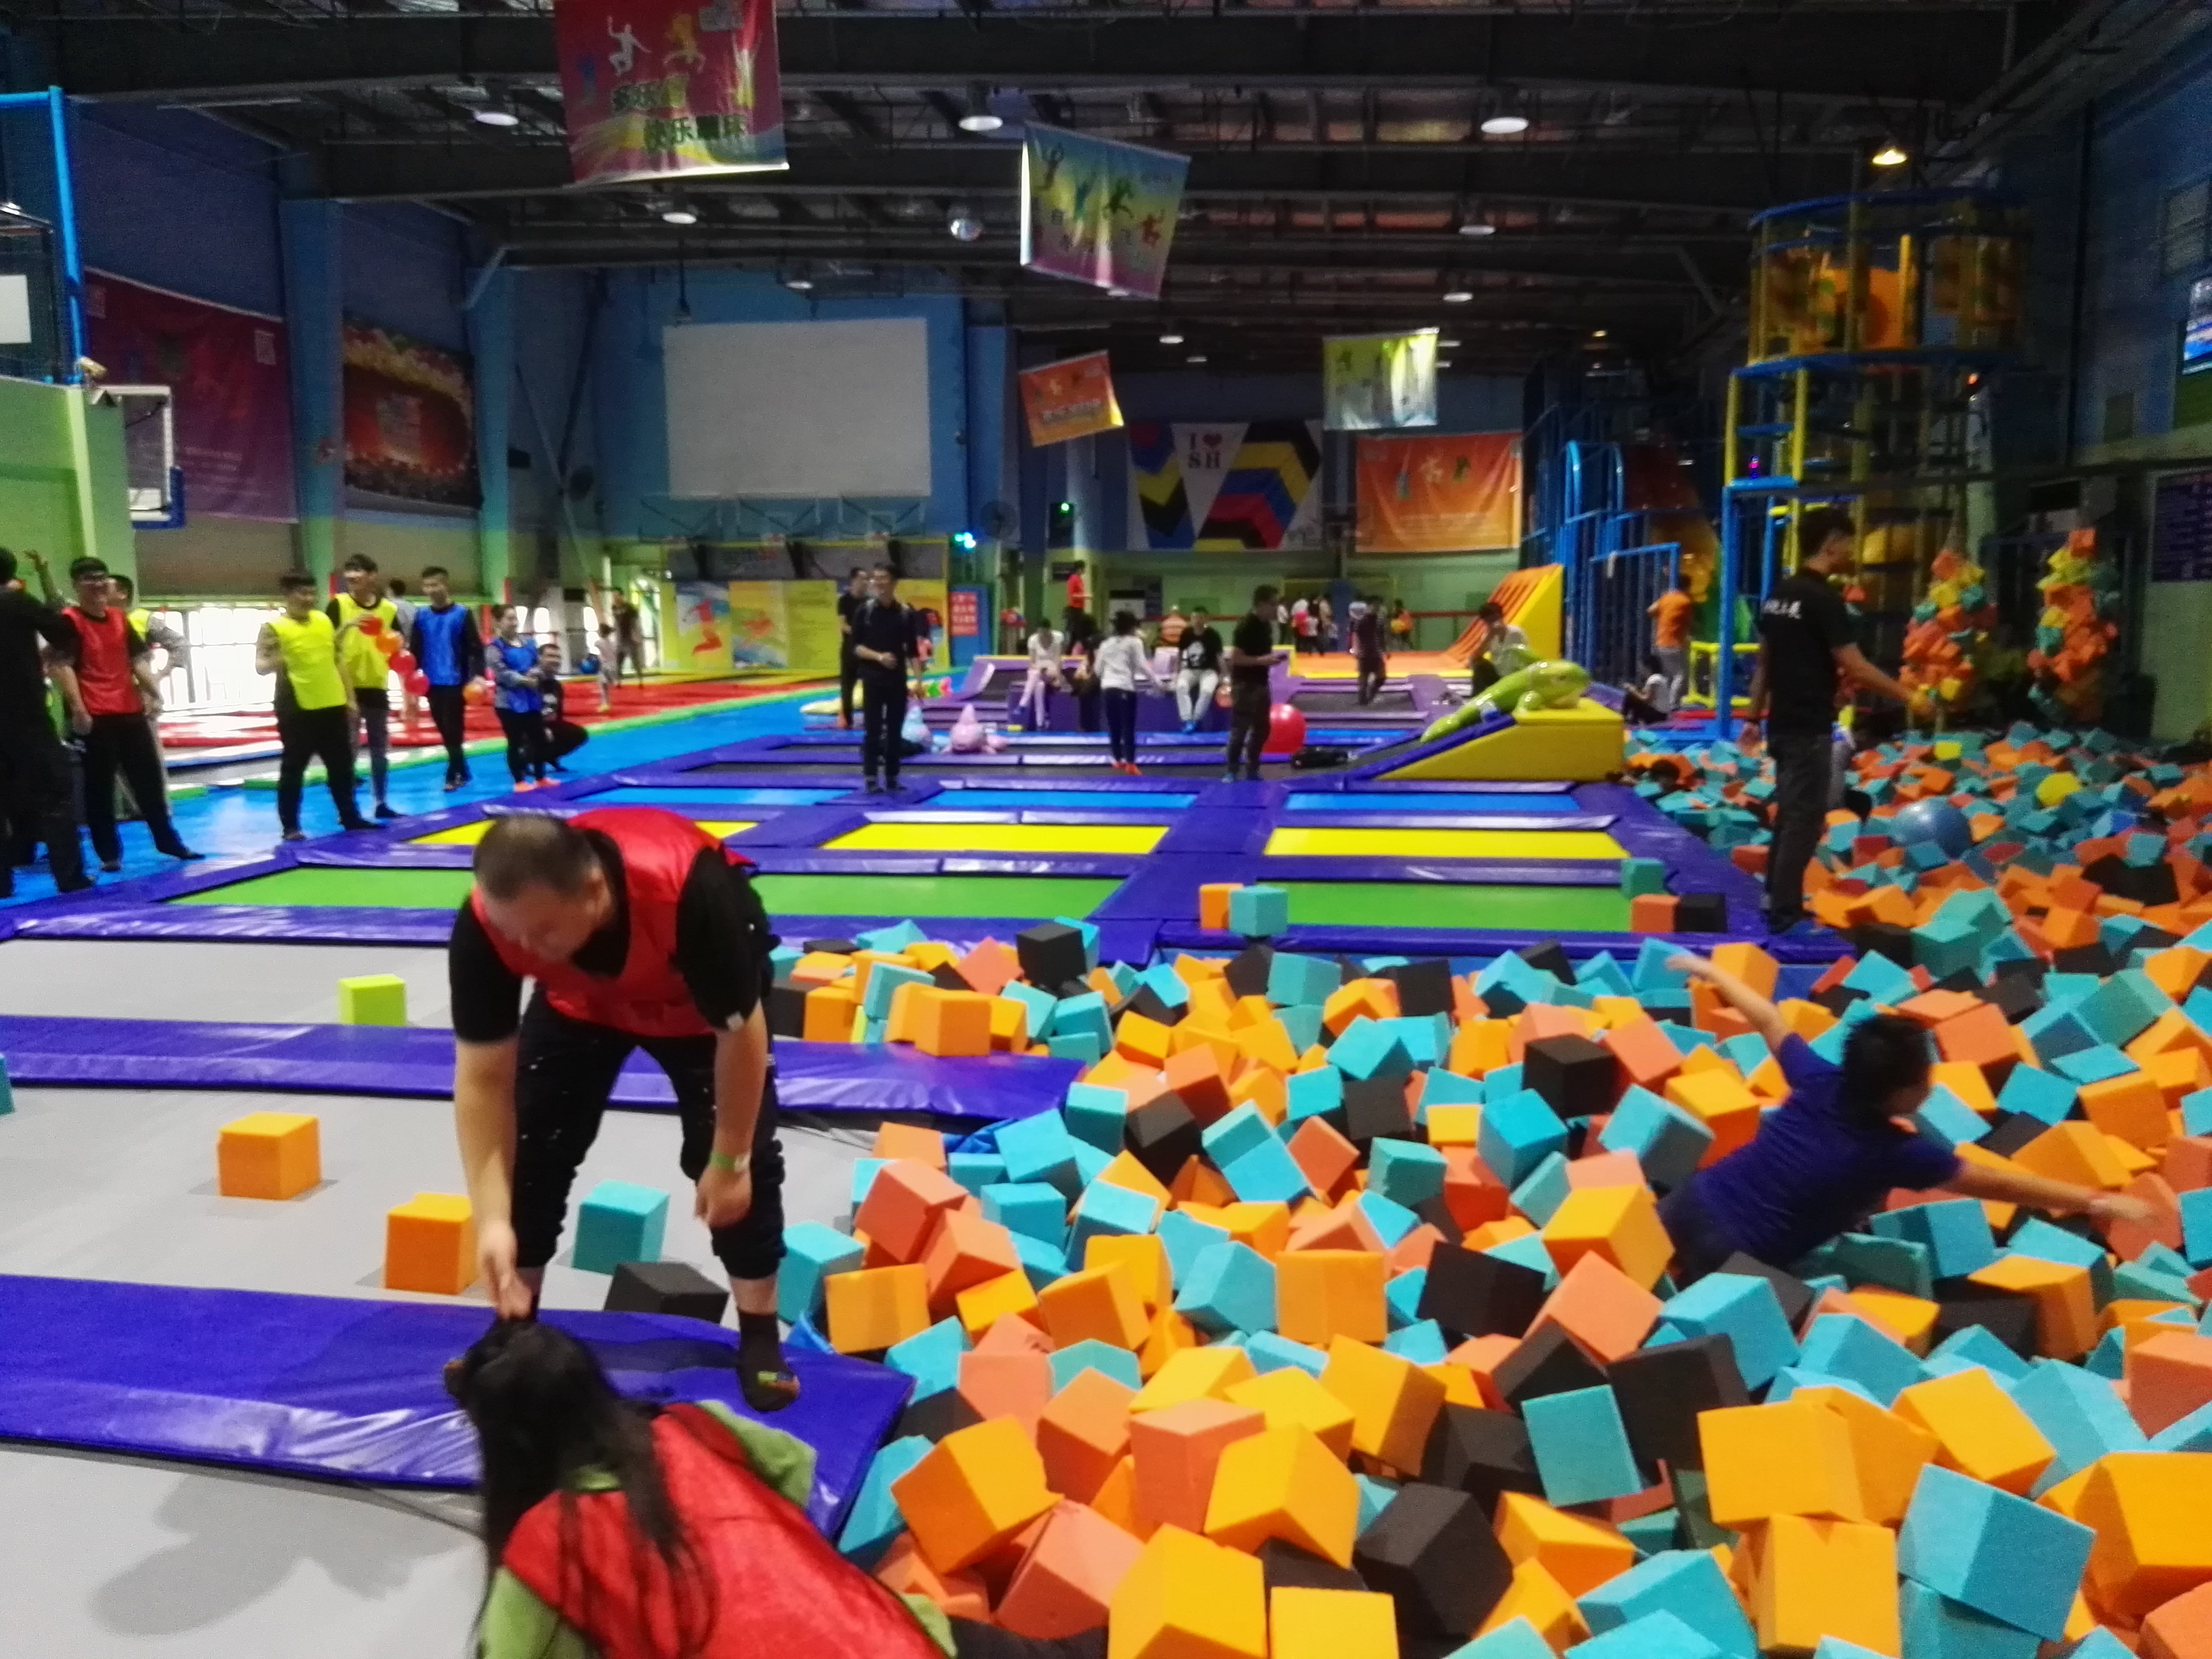 How to care and maintenance the trampoline park?